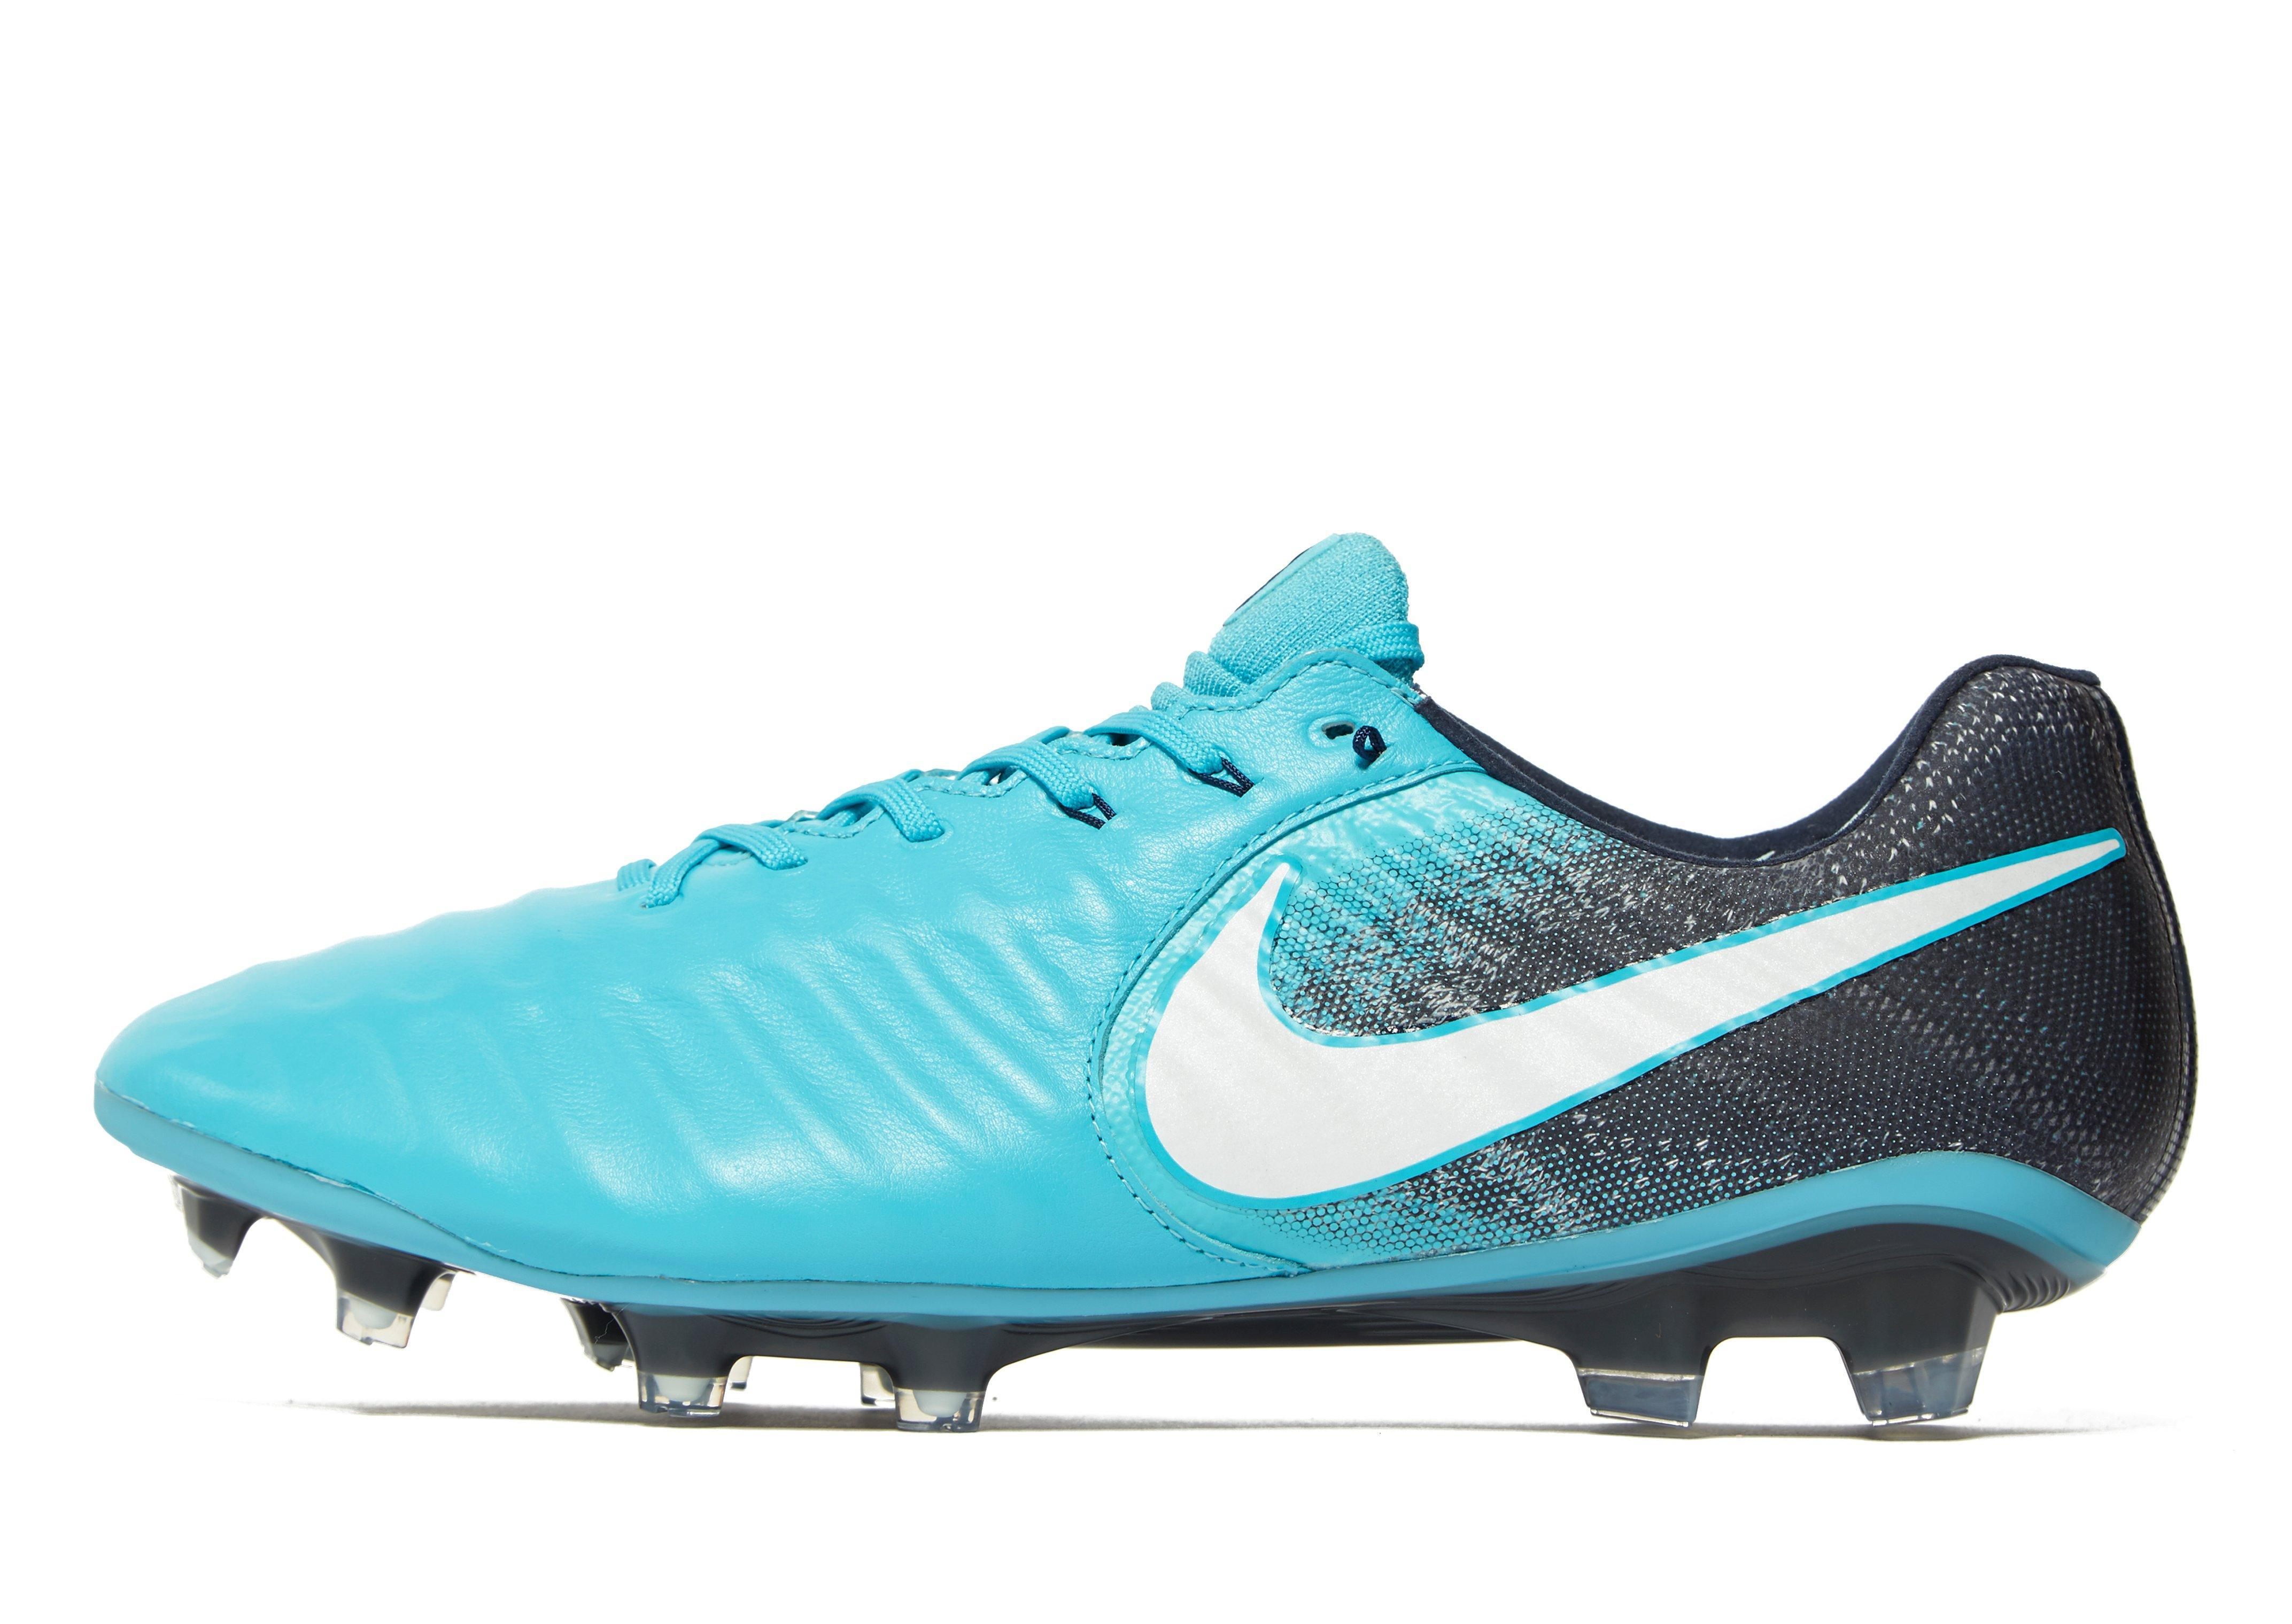 Lyst - Nike Fire And Ice Tiempo Legend Vii Fg in Blue for Men 826cdfb54d3